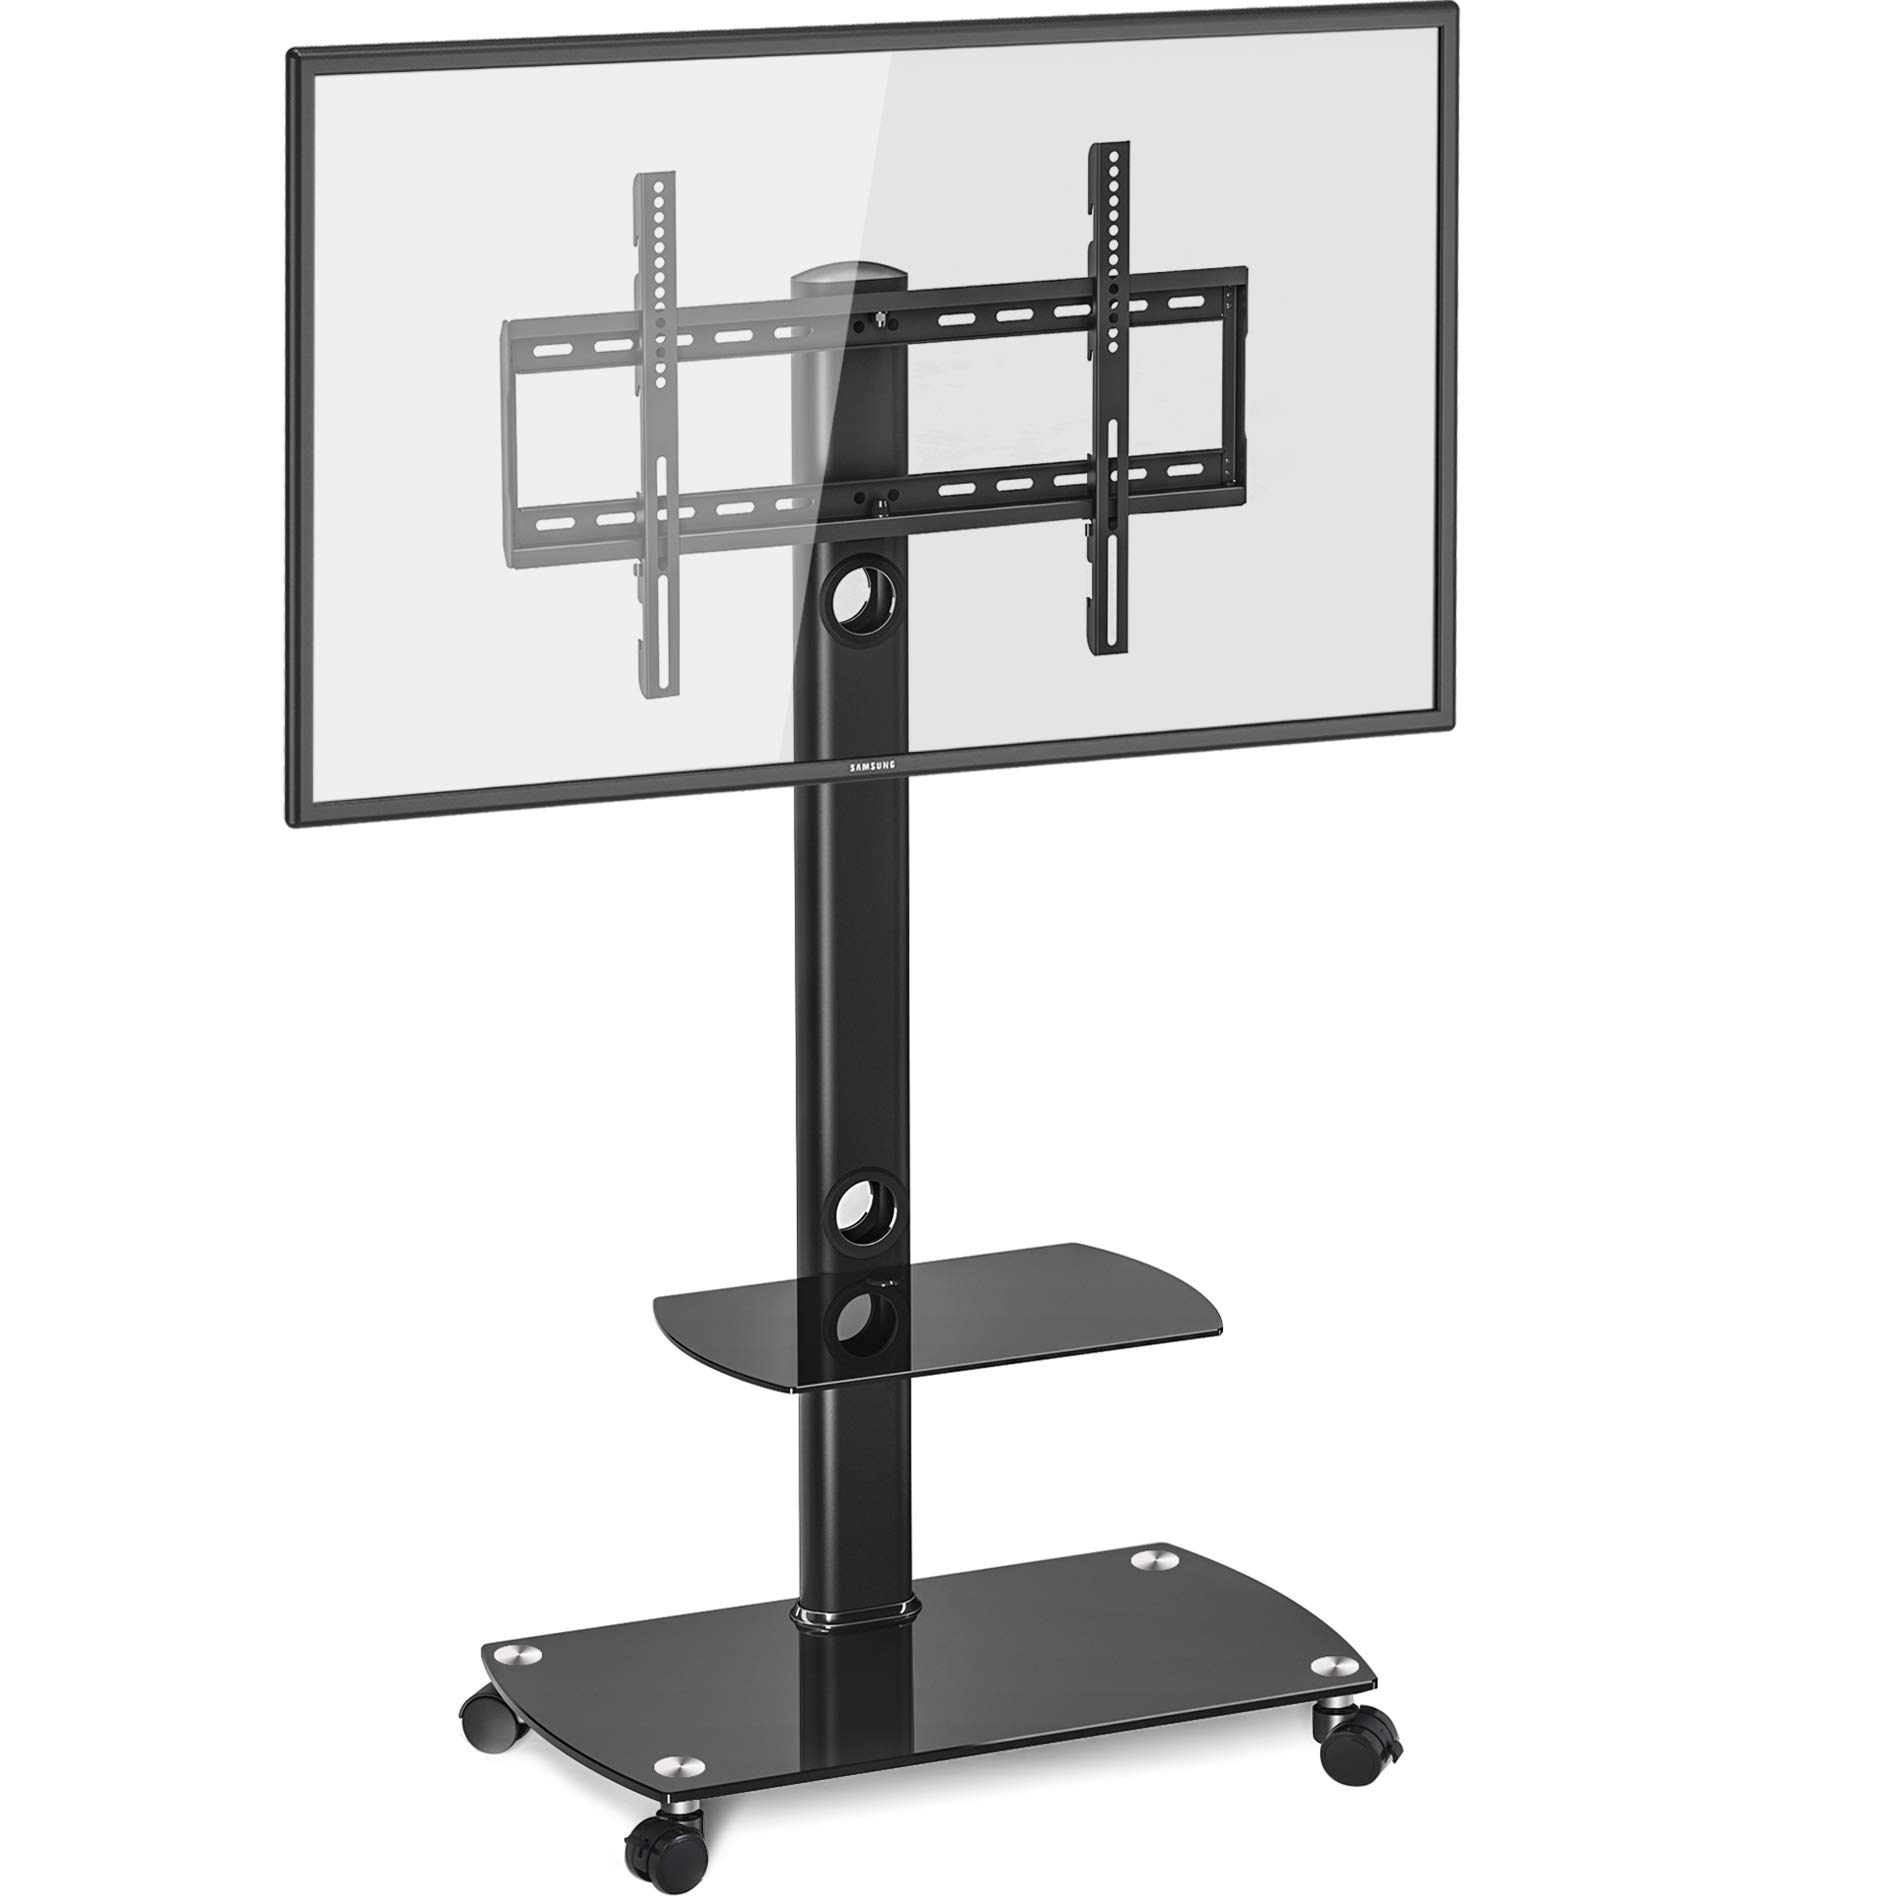 FITUEYES Rolling TV Cart Mobile TV Stand with Wheels and Shelves for 32-65 inch Flat Screen Tvs, TT206503GB by FITUEYES